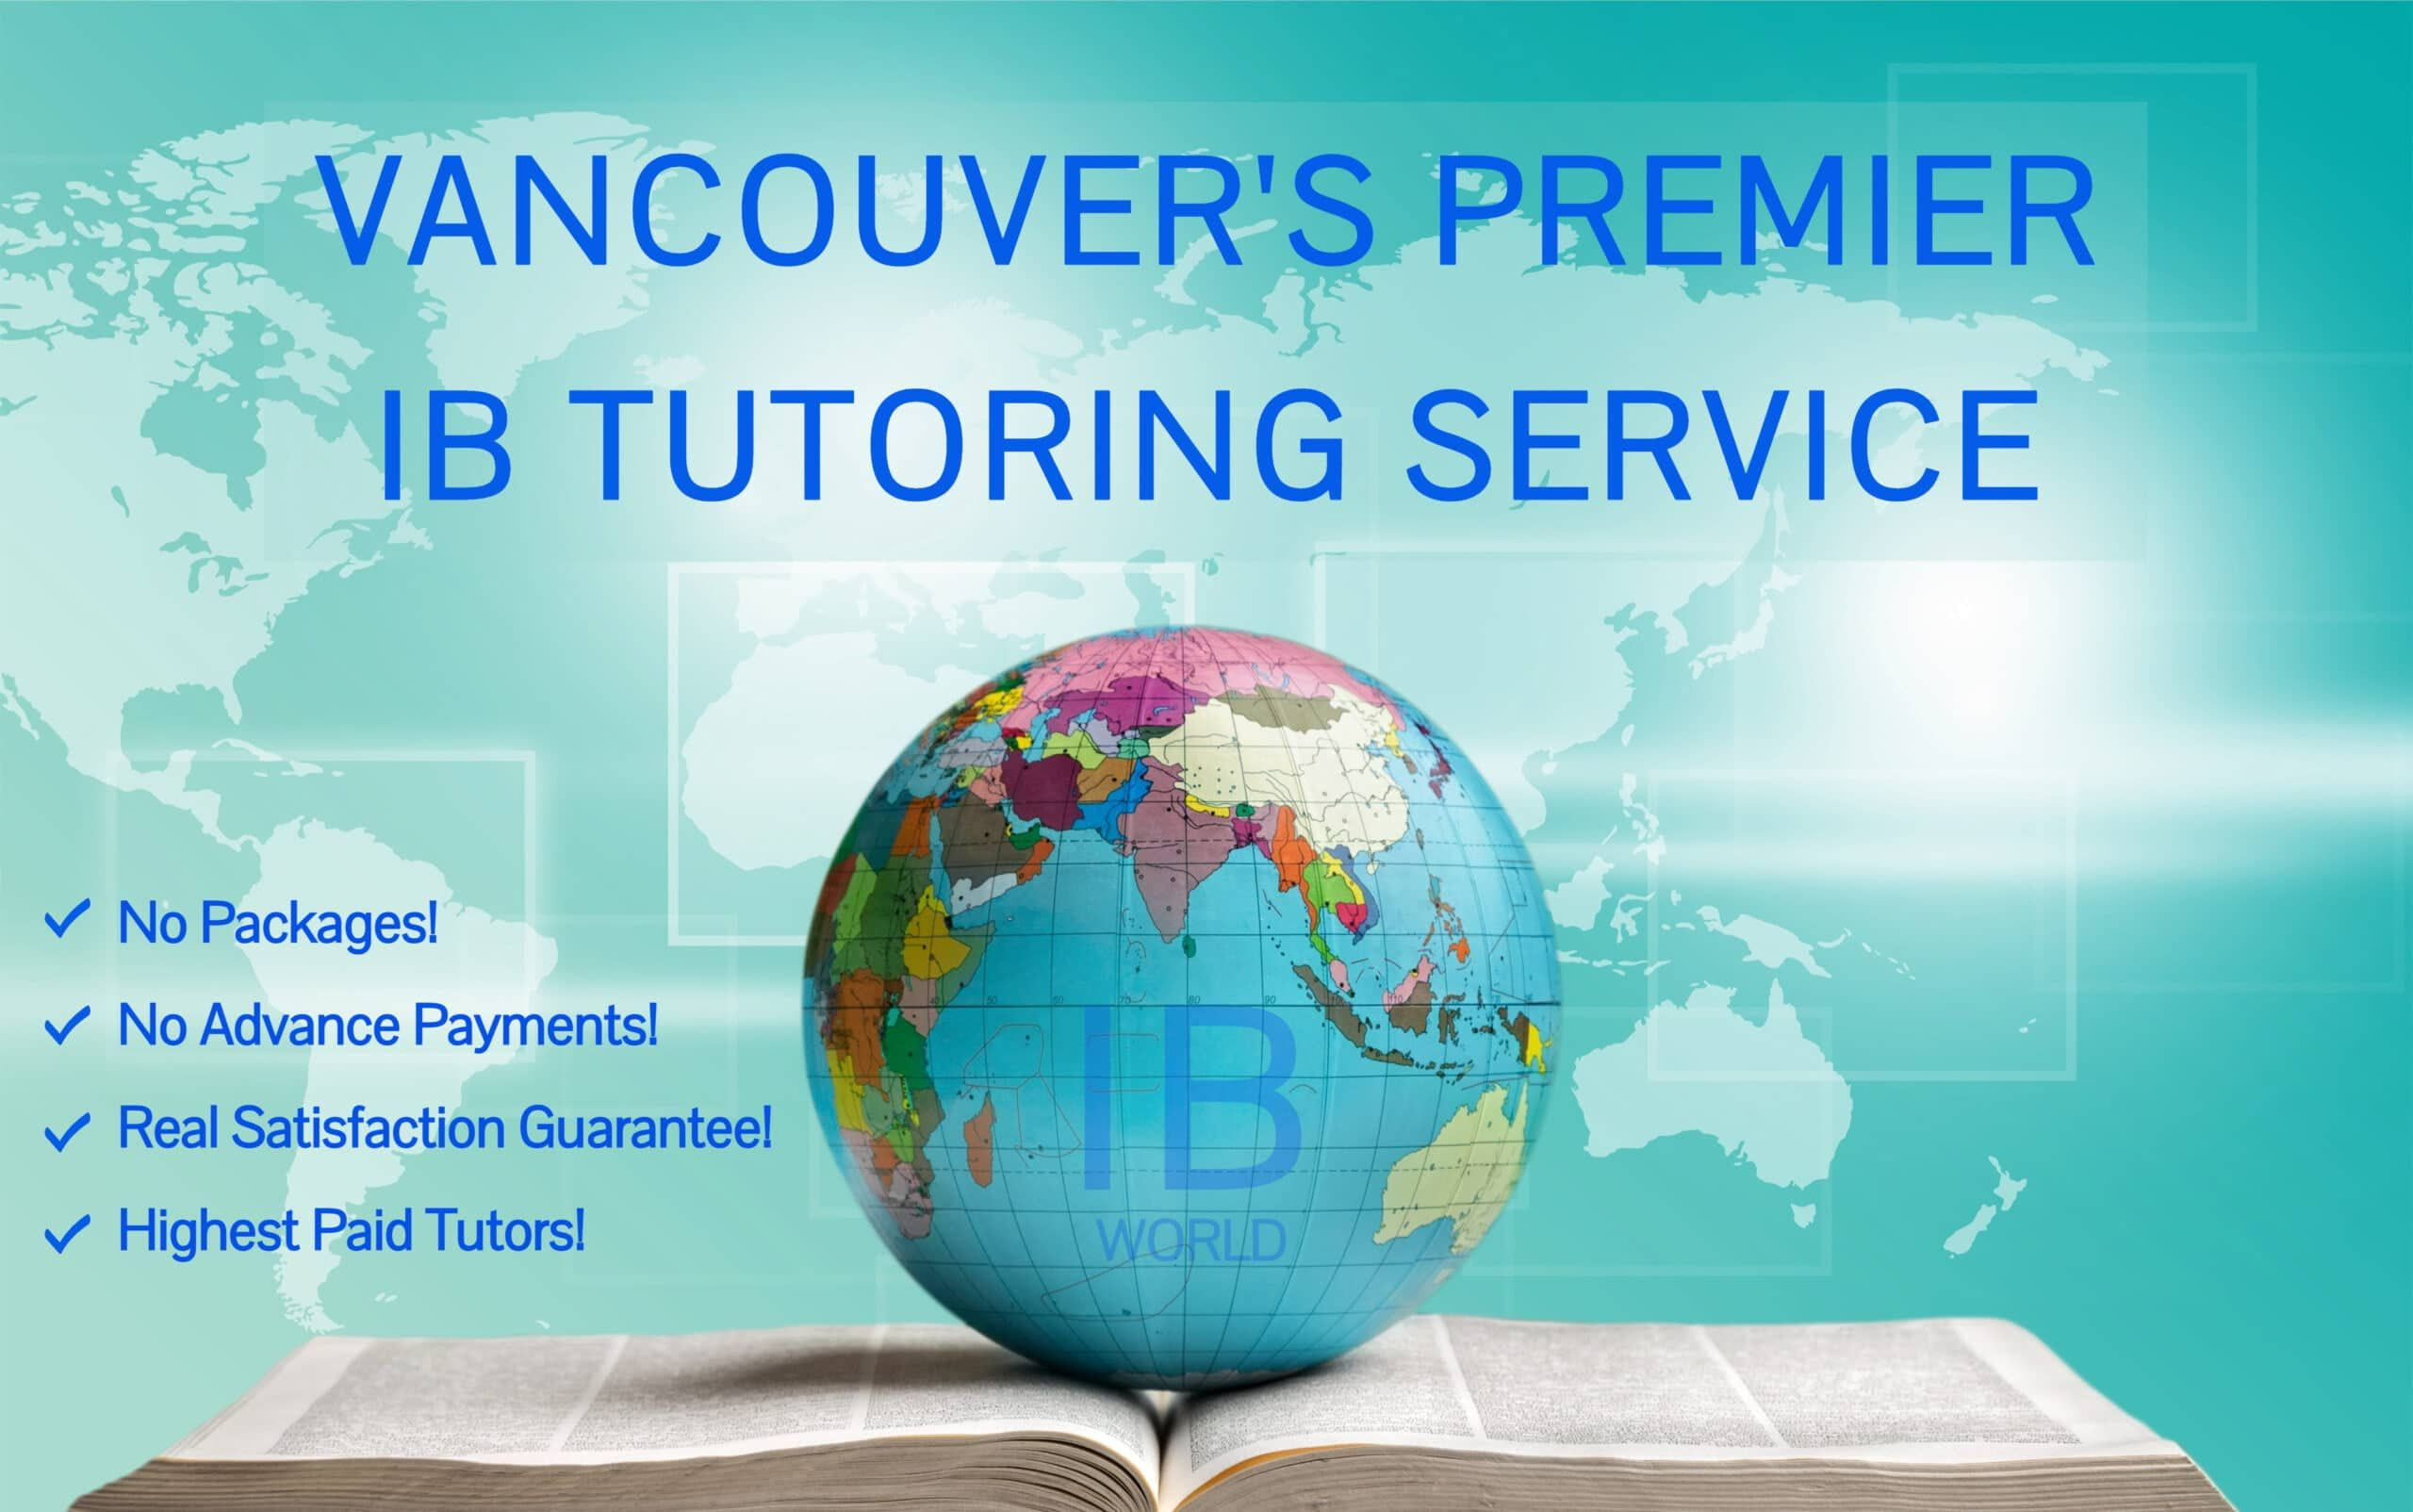 IB CHEMISTRY TUTORING AND IB PHYSICS TUTORING WITH HACK YOUR COURSE IN VANCOUVER